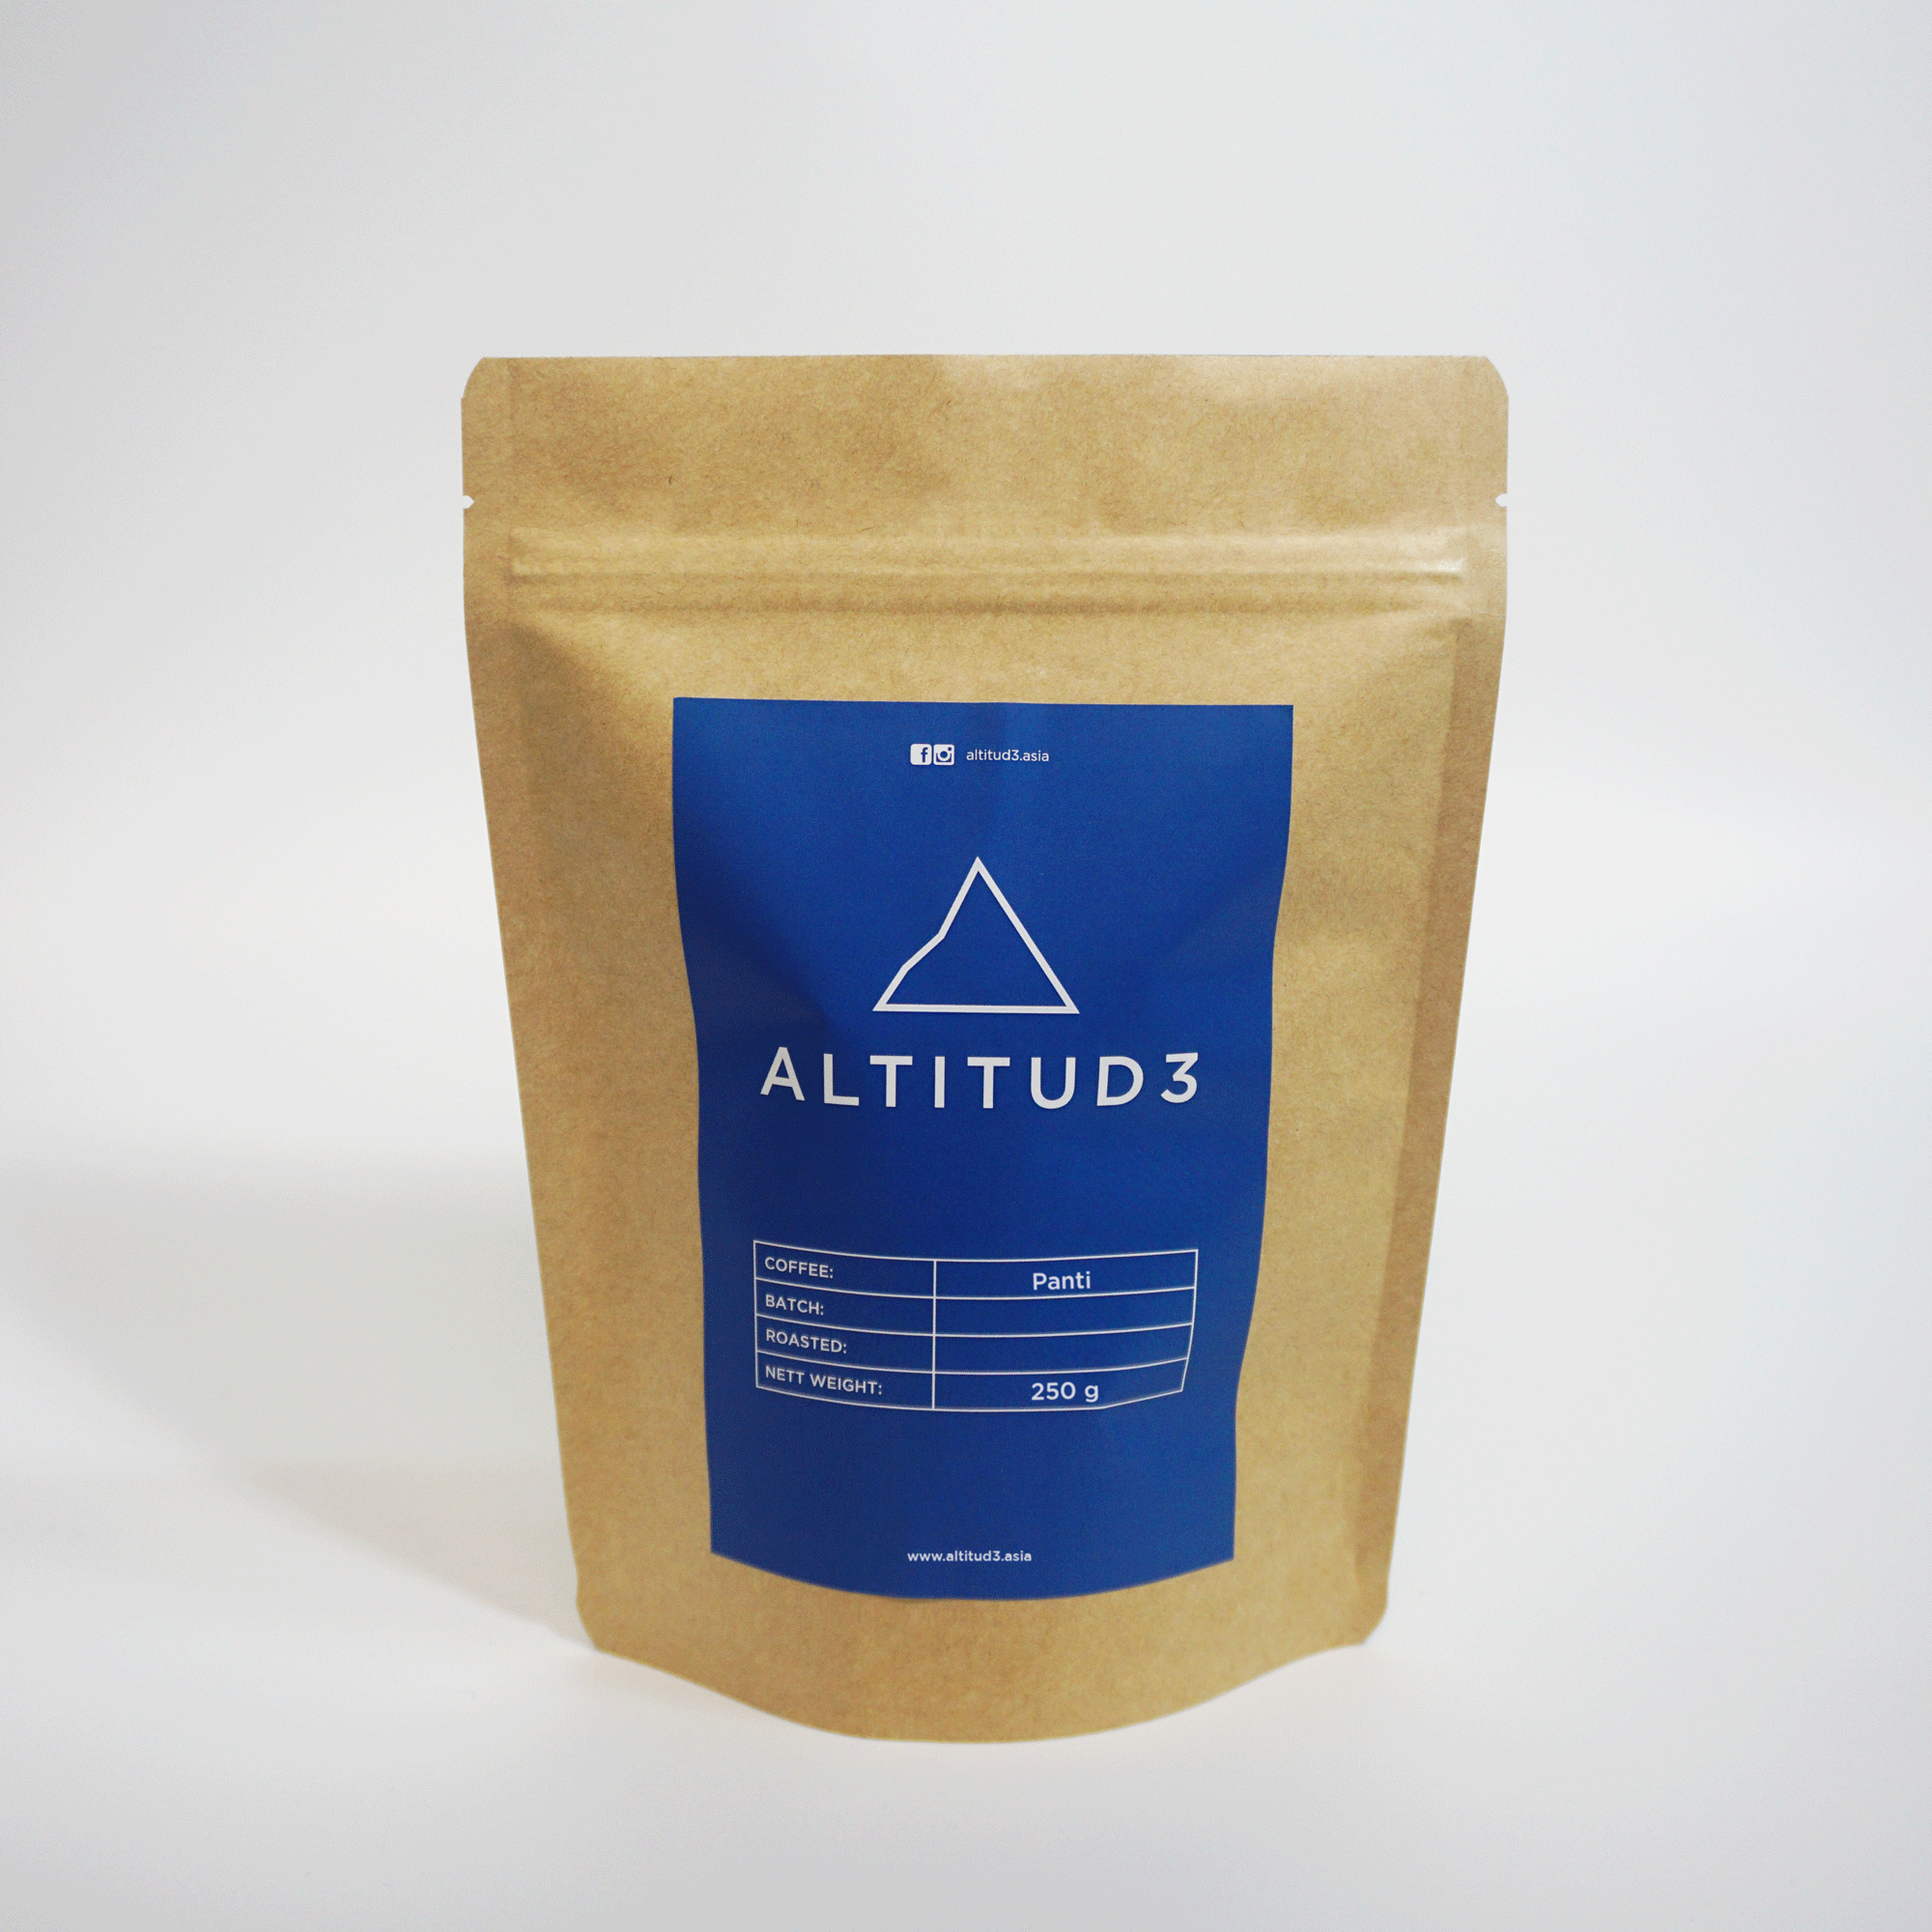 Altitud3 Suppliers In Klang Valley Kapal Api Coffee Candy Bag Pack Of 3